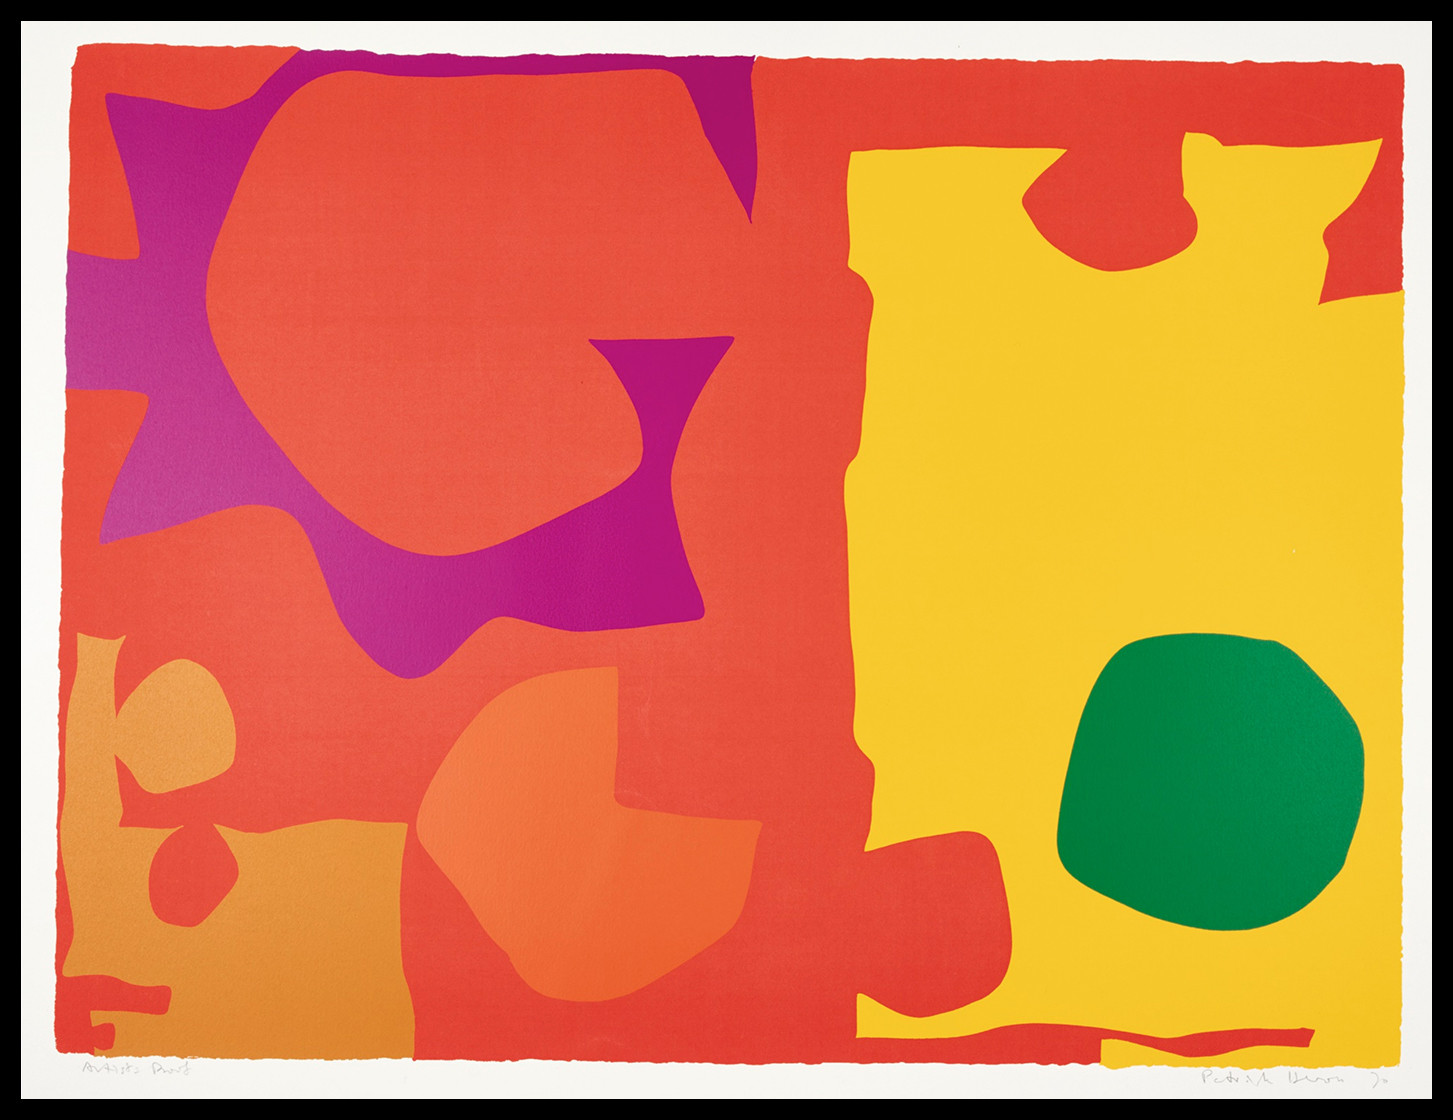 <span class=&#34;link fancybox-details-link&#34;><a href=&#34;/artists/93-patrick-heron-cbe/works/4014-patrick-heron-cbe-six-in-vermilion-with-green-in-yellow-1970/&#34;>View Detail Page</a></span><div class=&#34;artist&#34;><strong>Patrick Heron CBE</strong></div> 1920 – 1999 <div class=&#34;title&#34;><em>Six in Vermilion with Green in Yellow</em>, 1970</div> <div class=&#34;signed_and_dated&#34;>signed in pencil, dated, inscribed Artist's Proof</div> <div class=&#34;medium&#34;>silkscreen print in colours on wove paper, with full margins</div> <div class=&#34;dimensions&#34;>image: 58.5 x 78 cm (23 x 30 3/4 in.)<br /> sheet: 71.6 x 101.5 cm (28 1/4 x 40in.)</div> <div class=&#34;edition_details&#34;>Artist's Proof aside from edition of 100</div><div class=&#34;copyright_line&#34;>© The Estate of Patrick Heron</div>